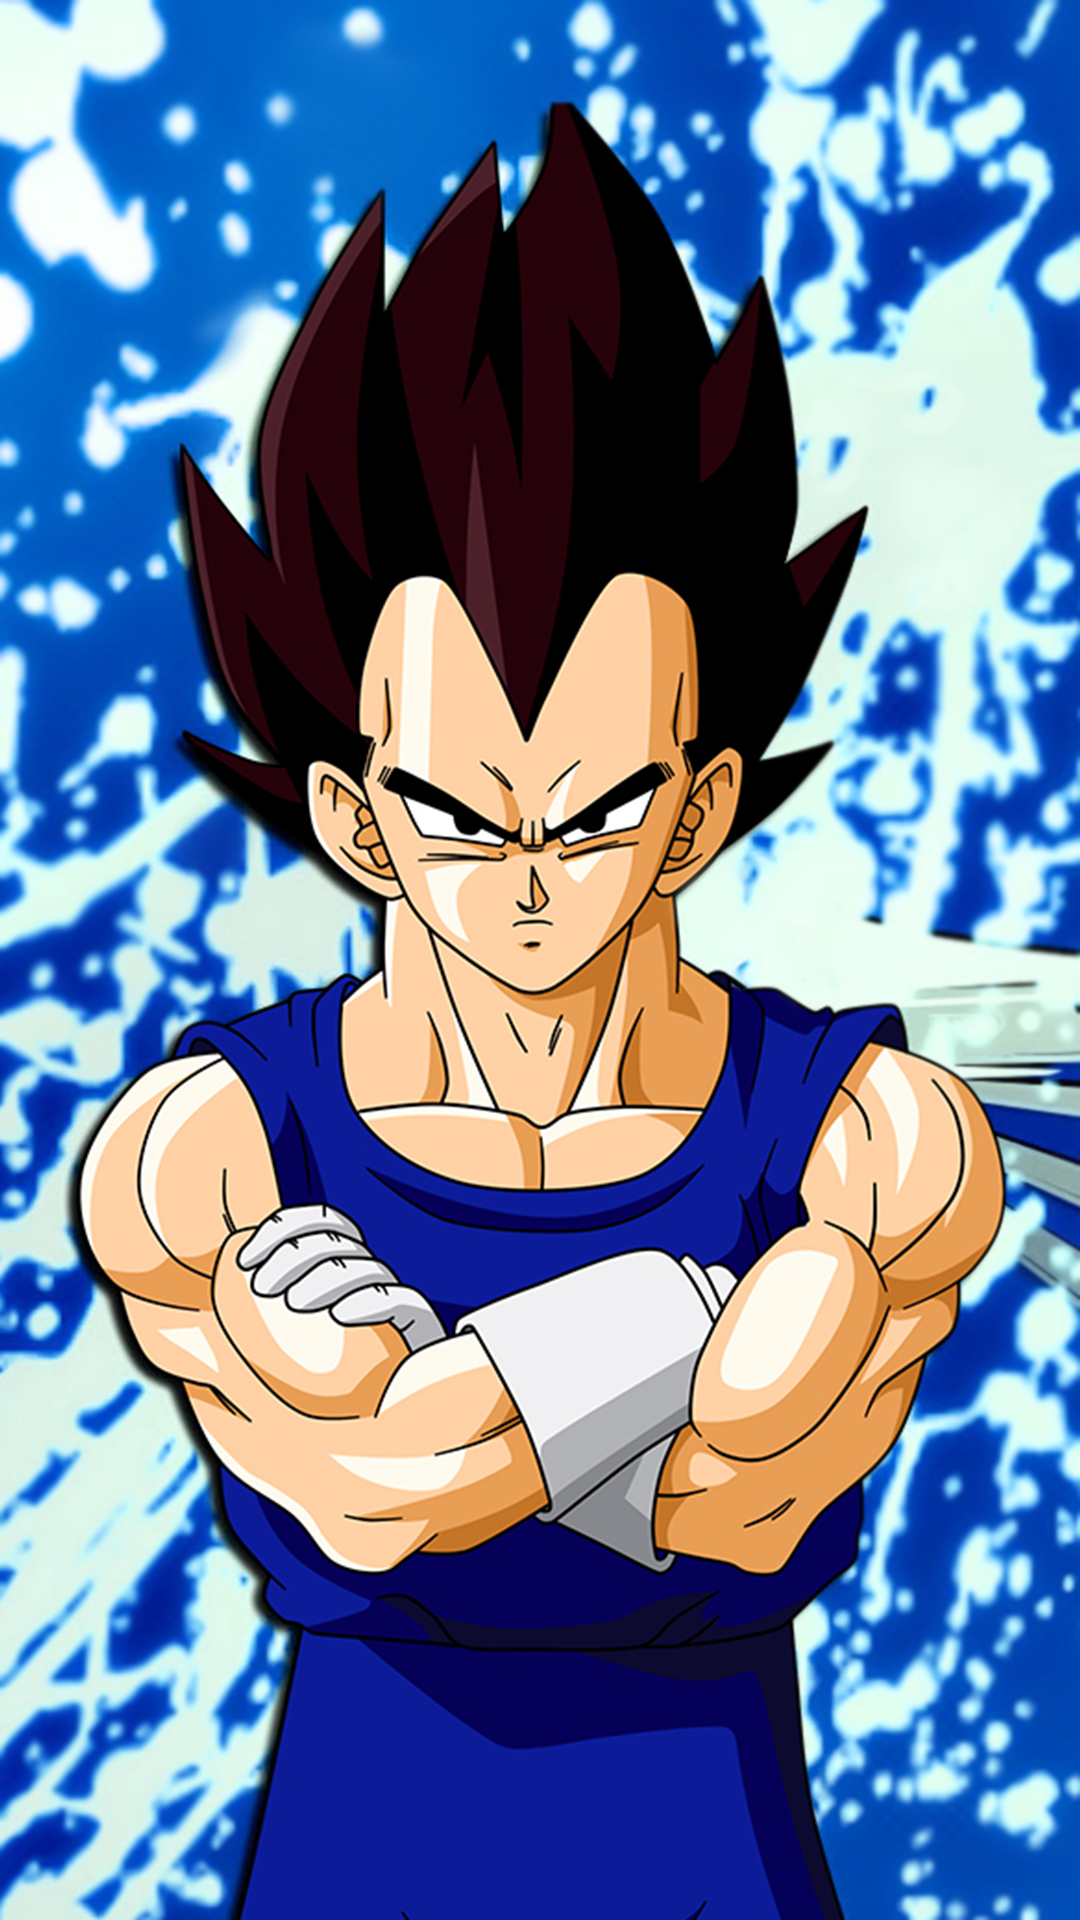 free hd vegeta sayan iphone wallpaper for download 0557